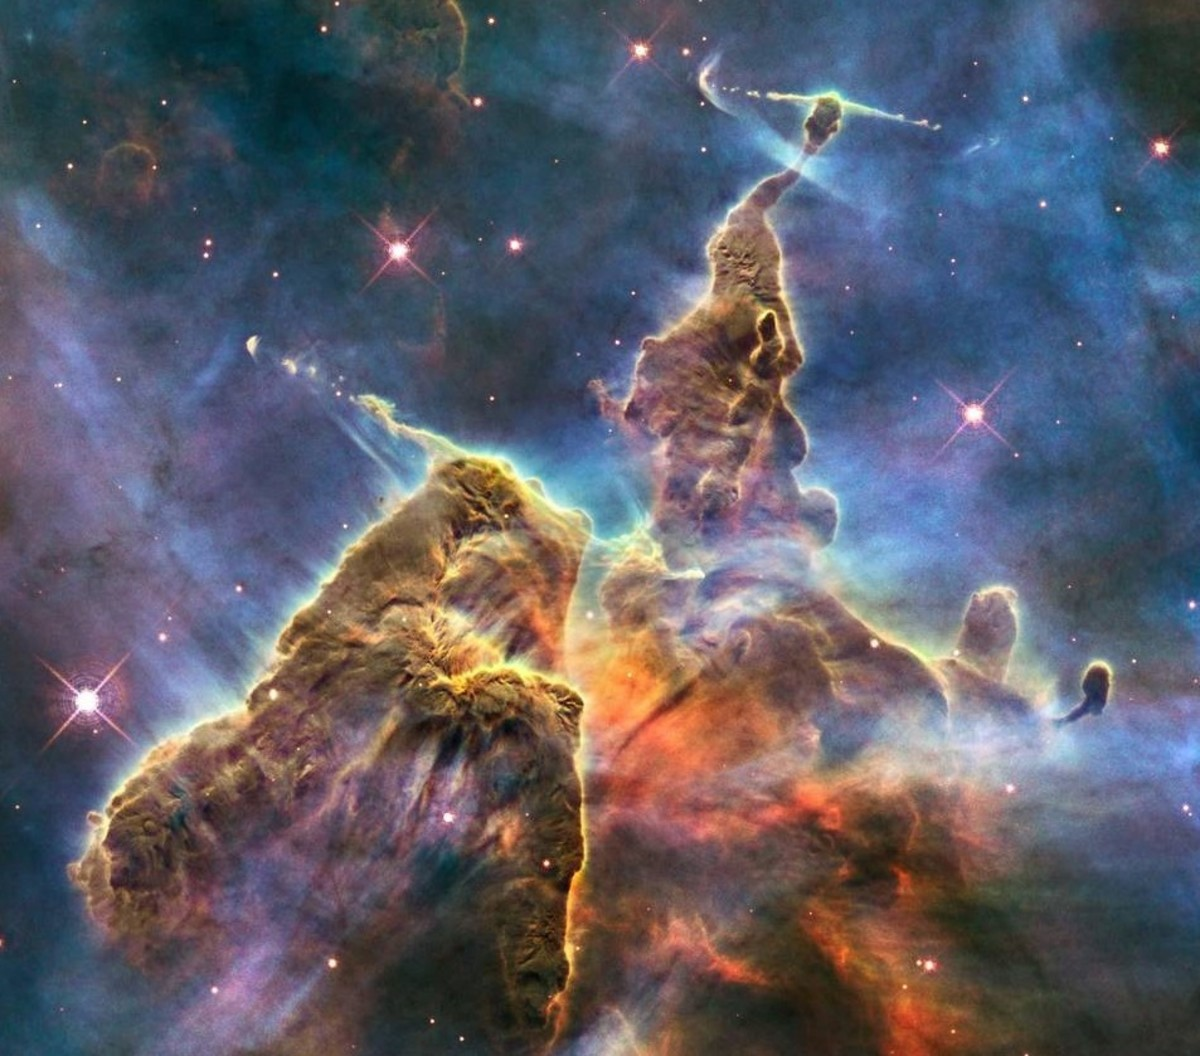 Hubble Space Telescope photo is but a small portion of one of the largest seen star-birth regions in the galaxy, the Carina Nebula. Towers of cool hydrogen laced with dust rise from the wall of the nebula.